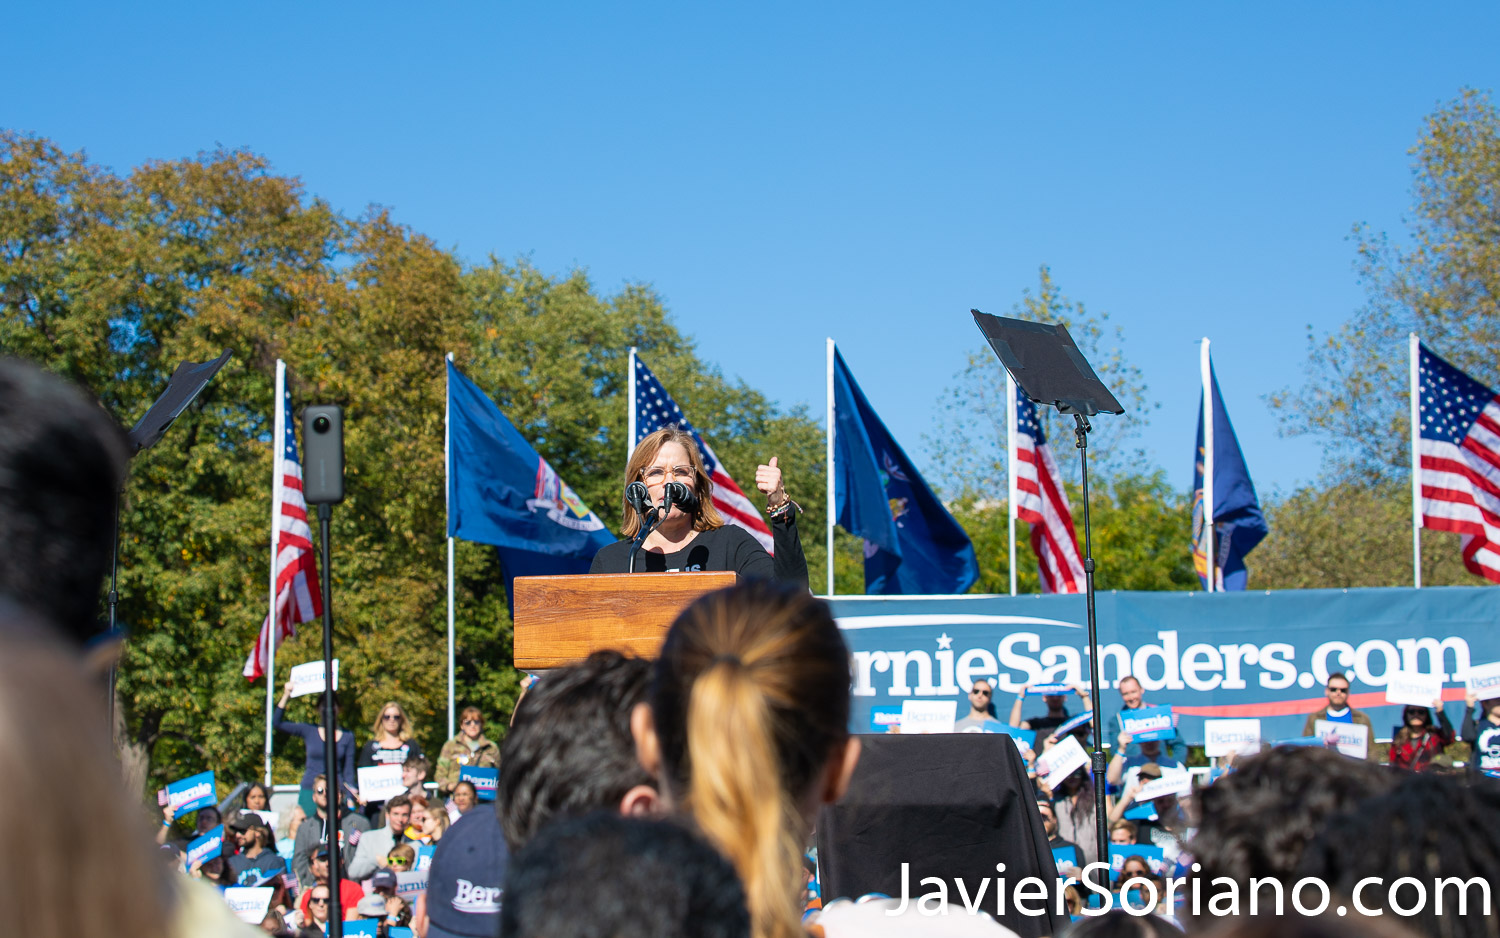 Saturday, October 19, 2019. Queens, New York City - Today Bernie Sanders had a rally in Queens. Almost 26 thousand people attended the event. Mayor Carmen Yulín Cruz Soto was one of the speakers. Photo by Javier Soriano/www.JavierSoriano.com